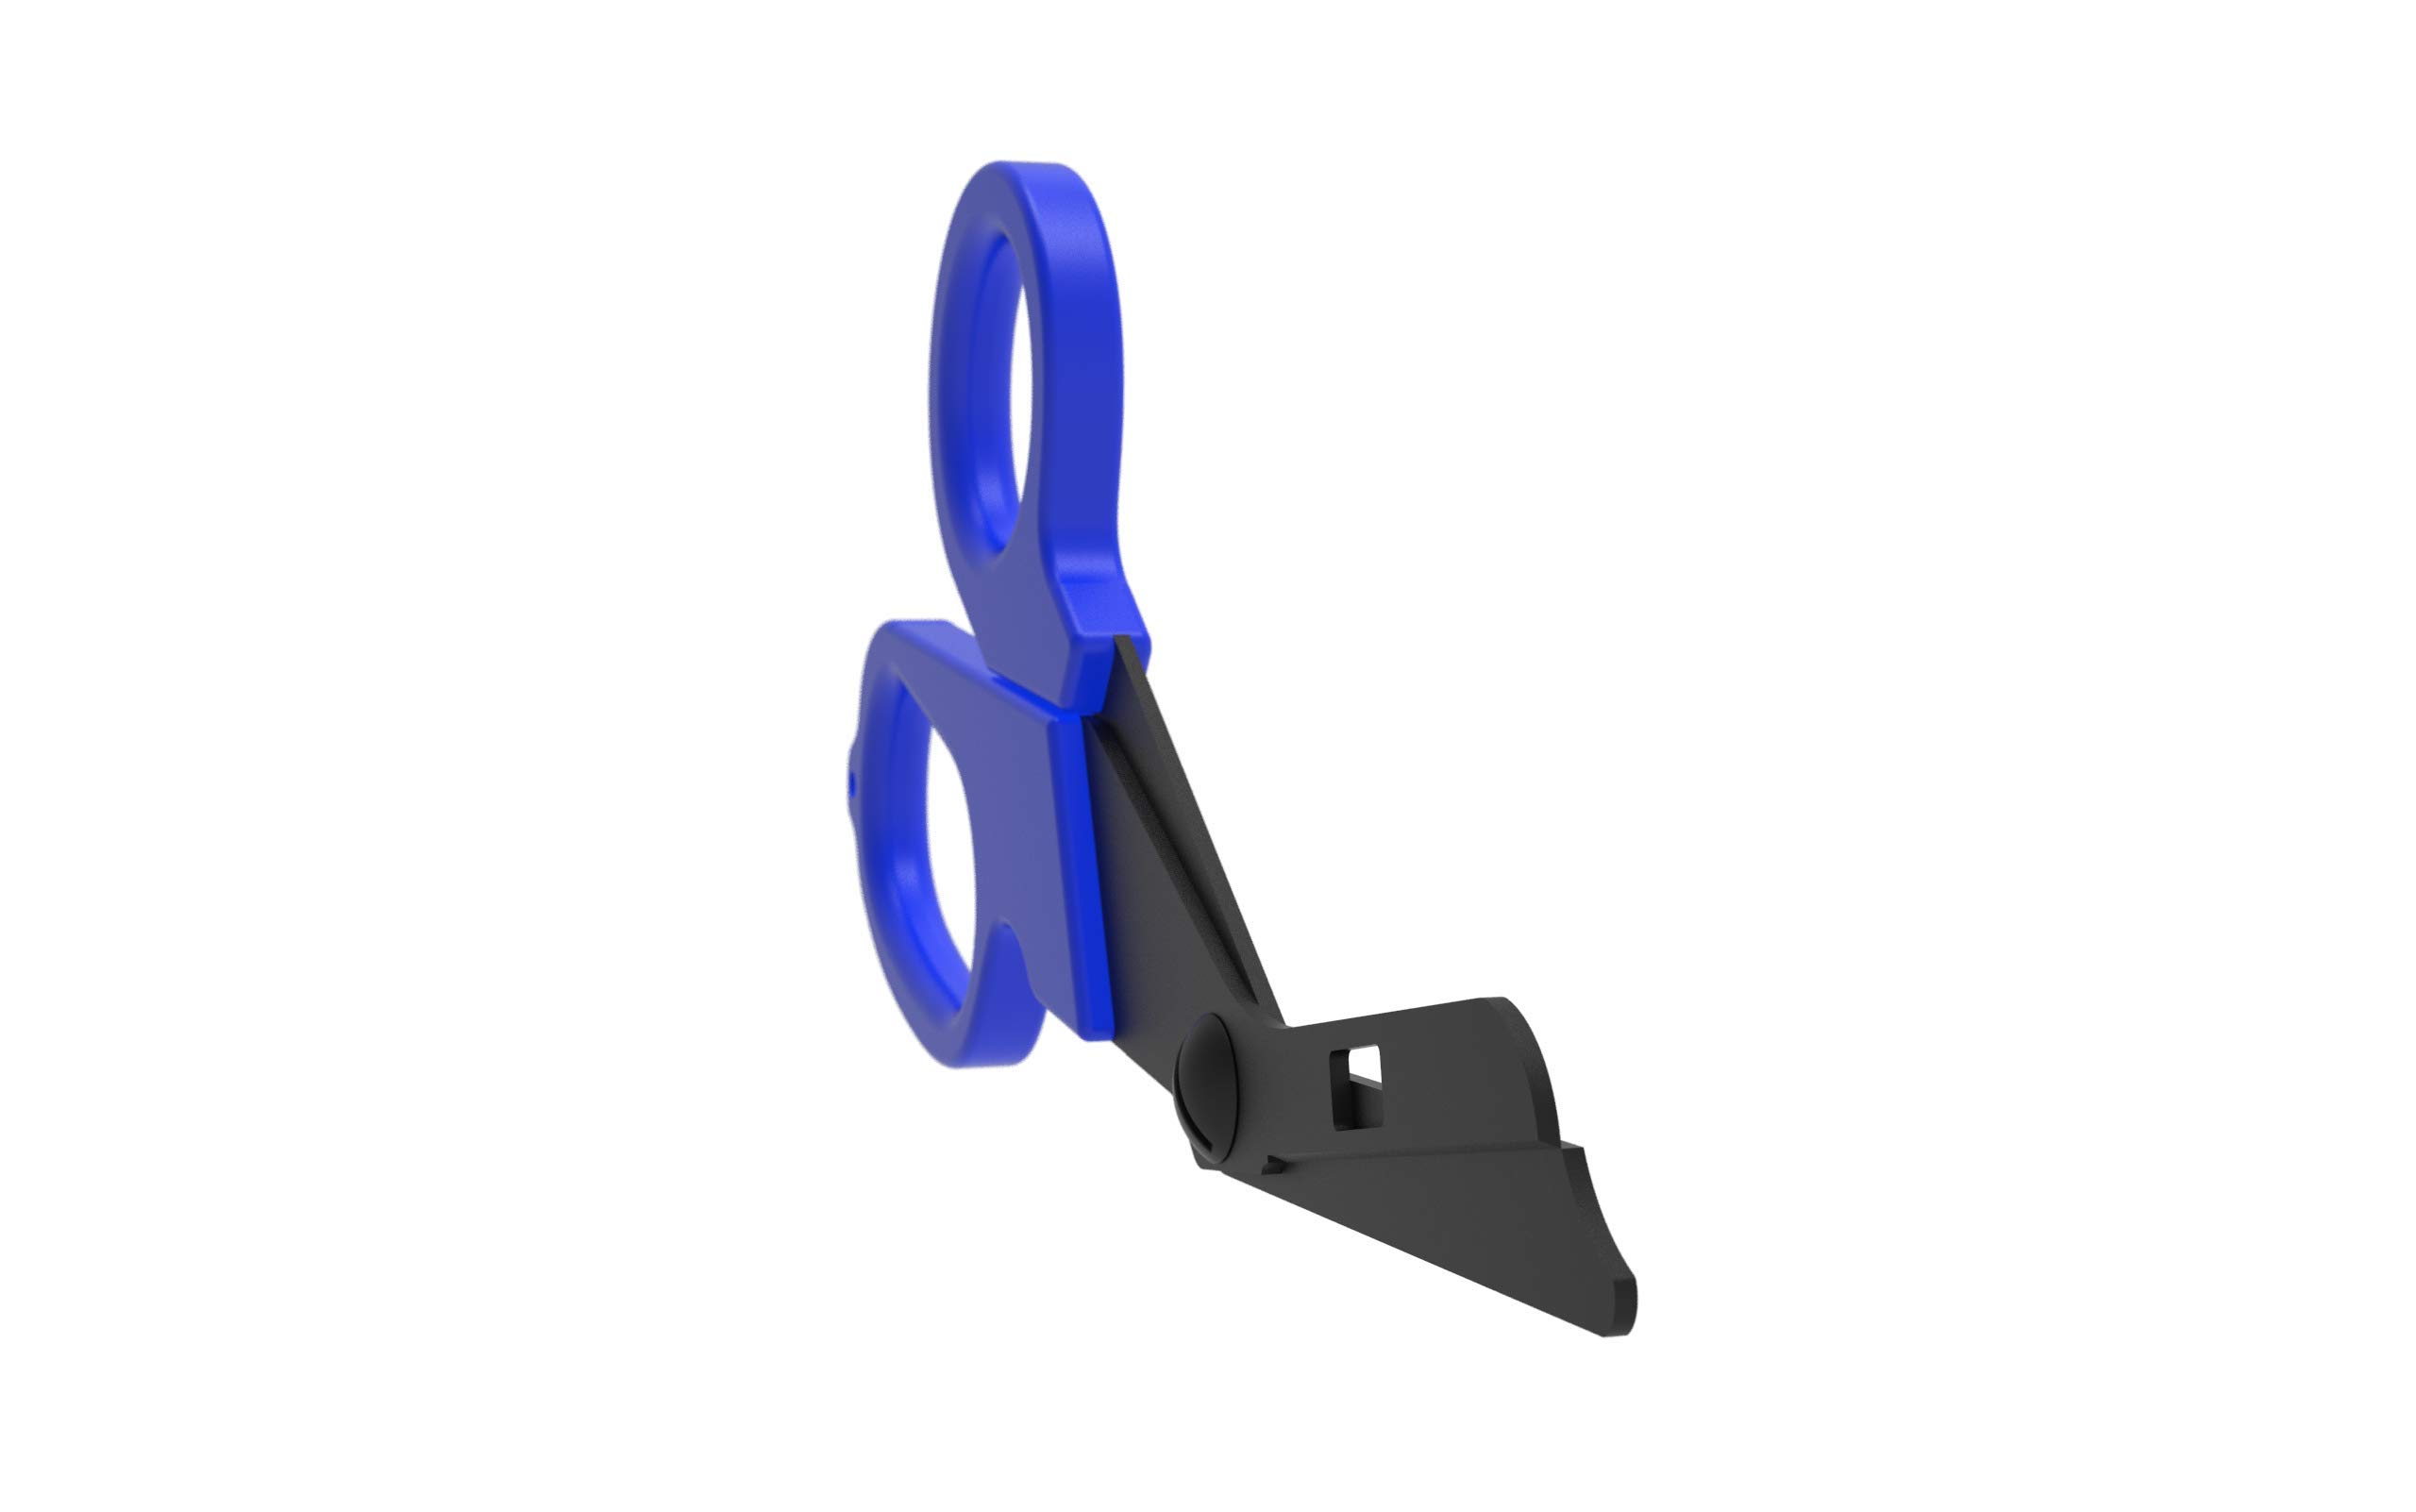 Trauma Shears - Diamond Coated Extreme Duty ER LIFE ONE SHEAR - Relentless, Tough and Enduring Emergency Healthcare Provider Shears Made with Japanese Surgical Stainless-Steel - (Blue) by ER LIFE ONE SHEAR (Image #6)